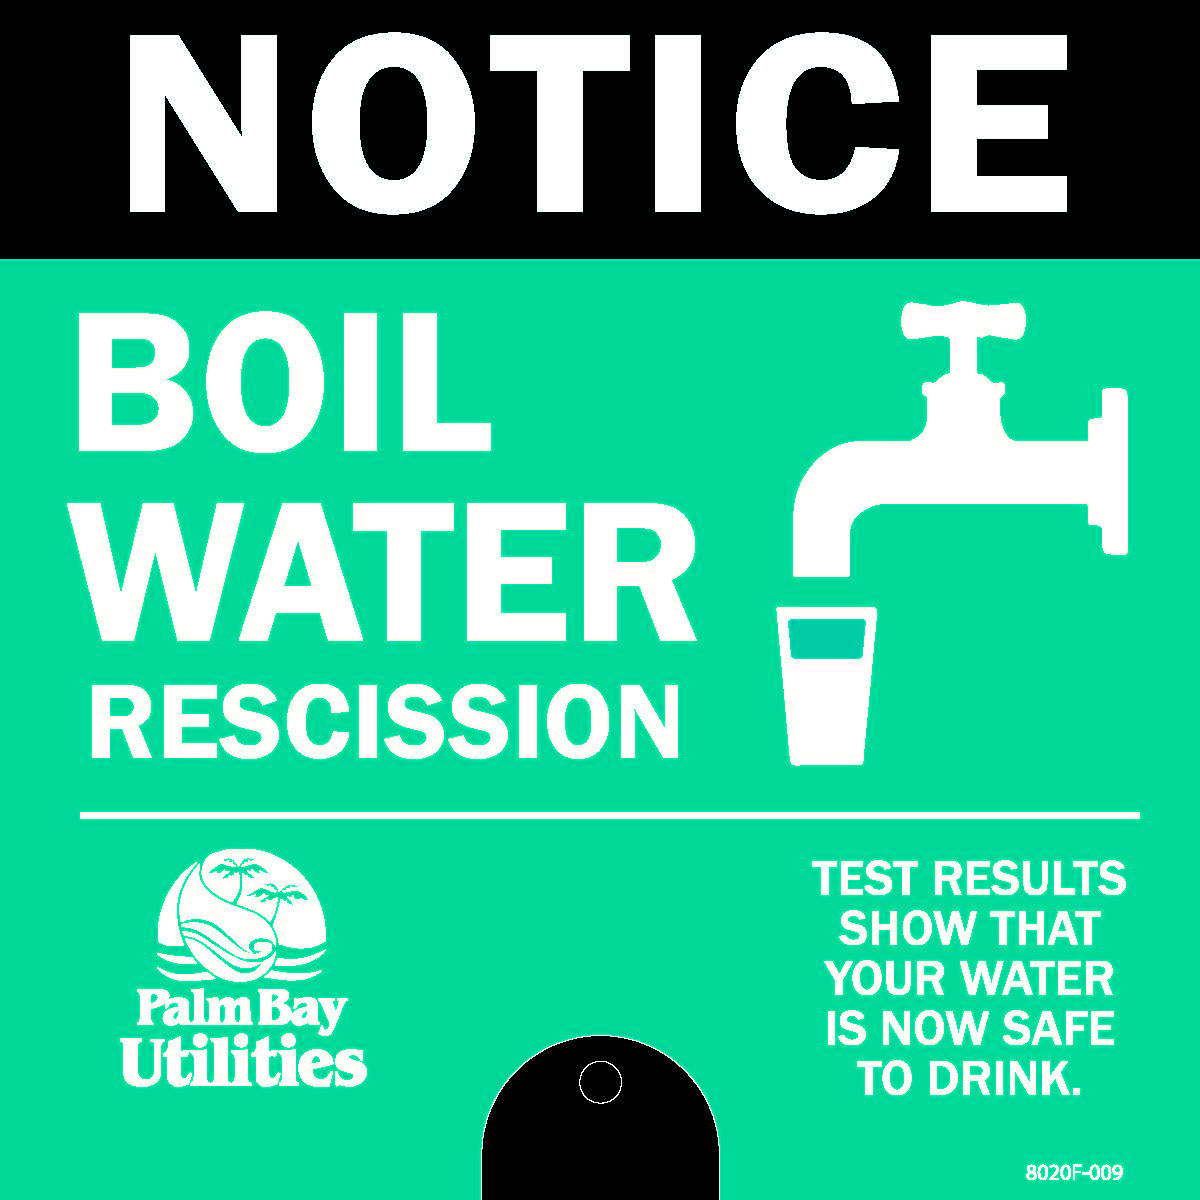 Yard Stake Notice for Boil Water Rescission